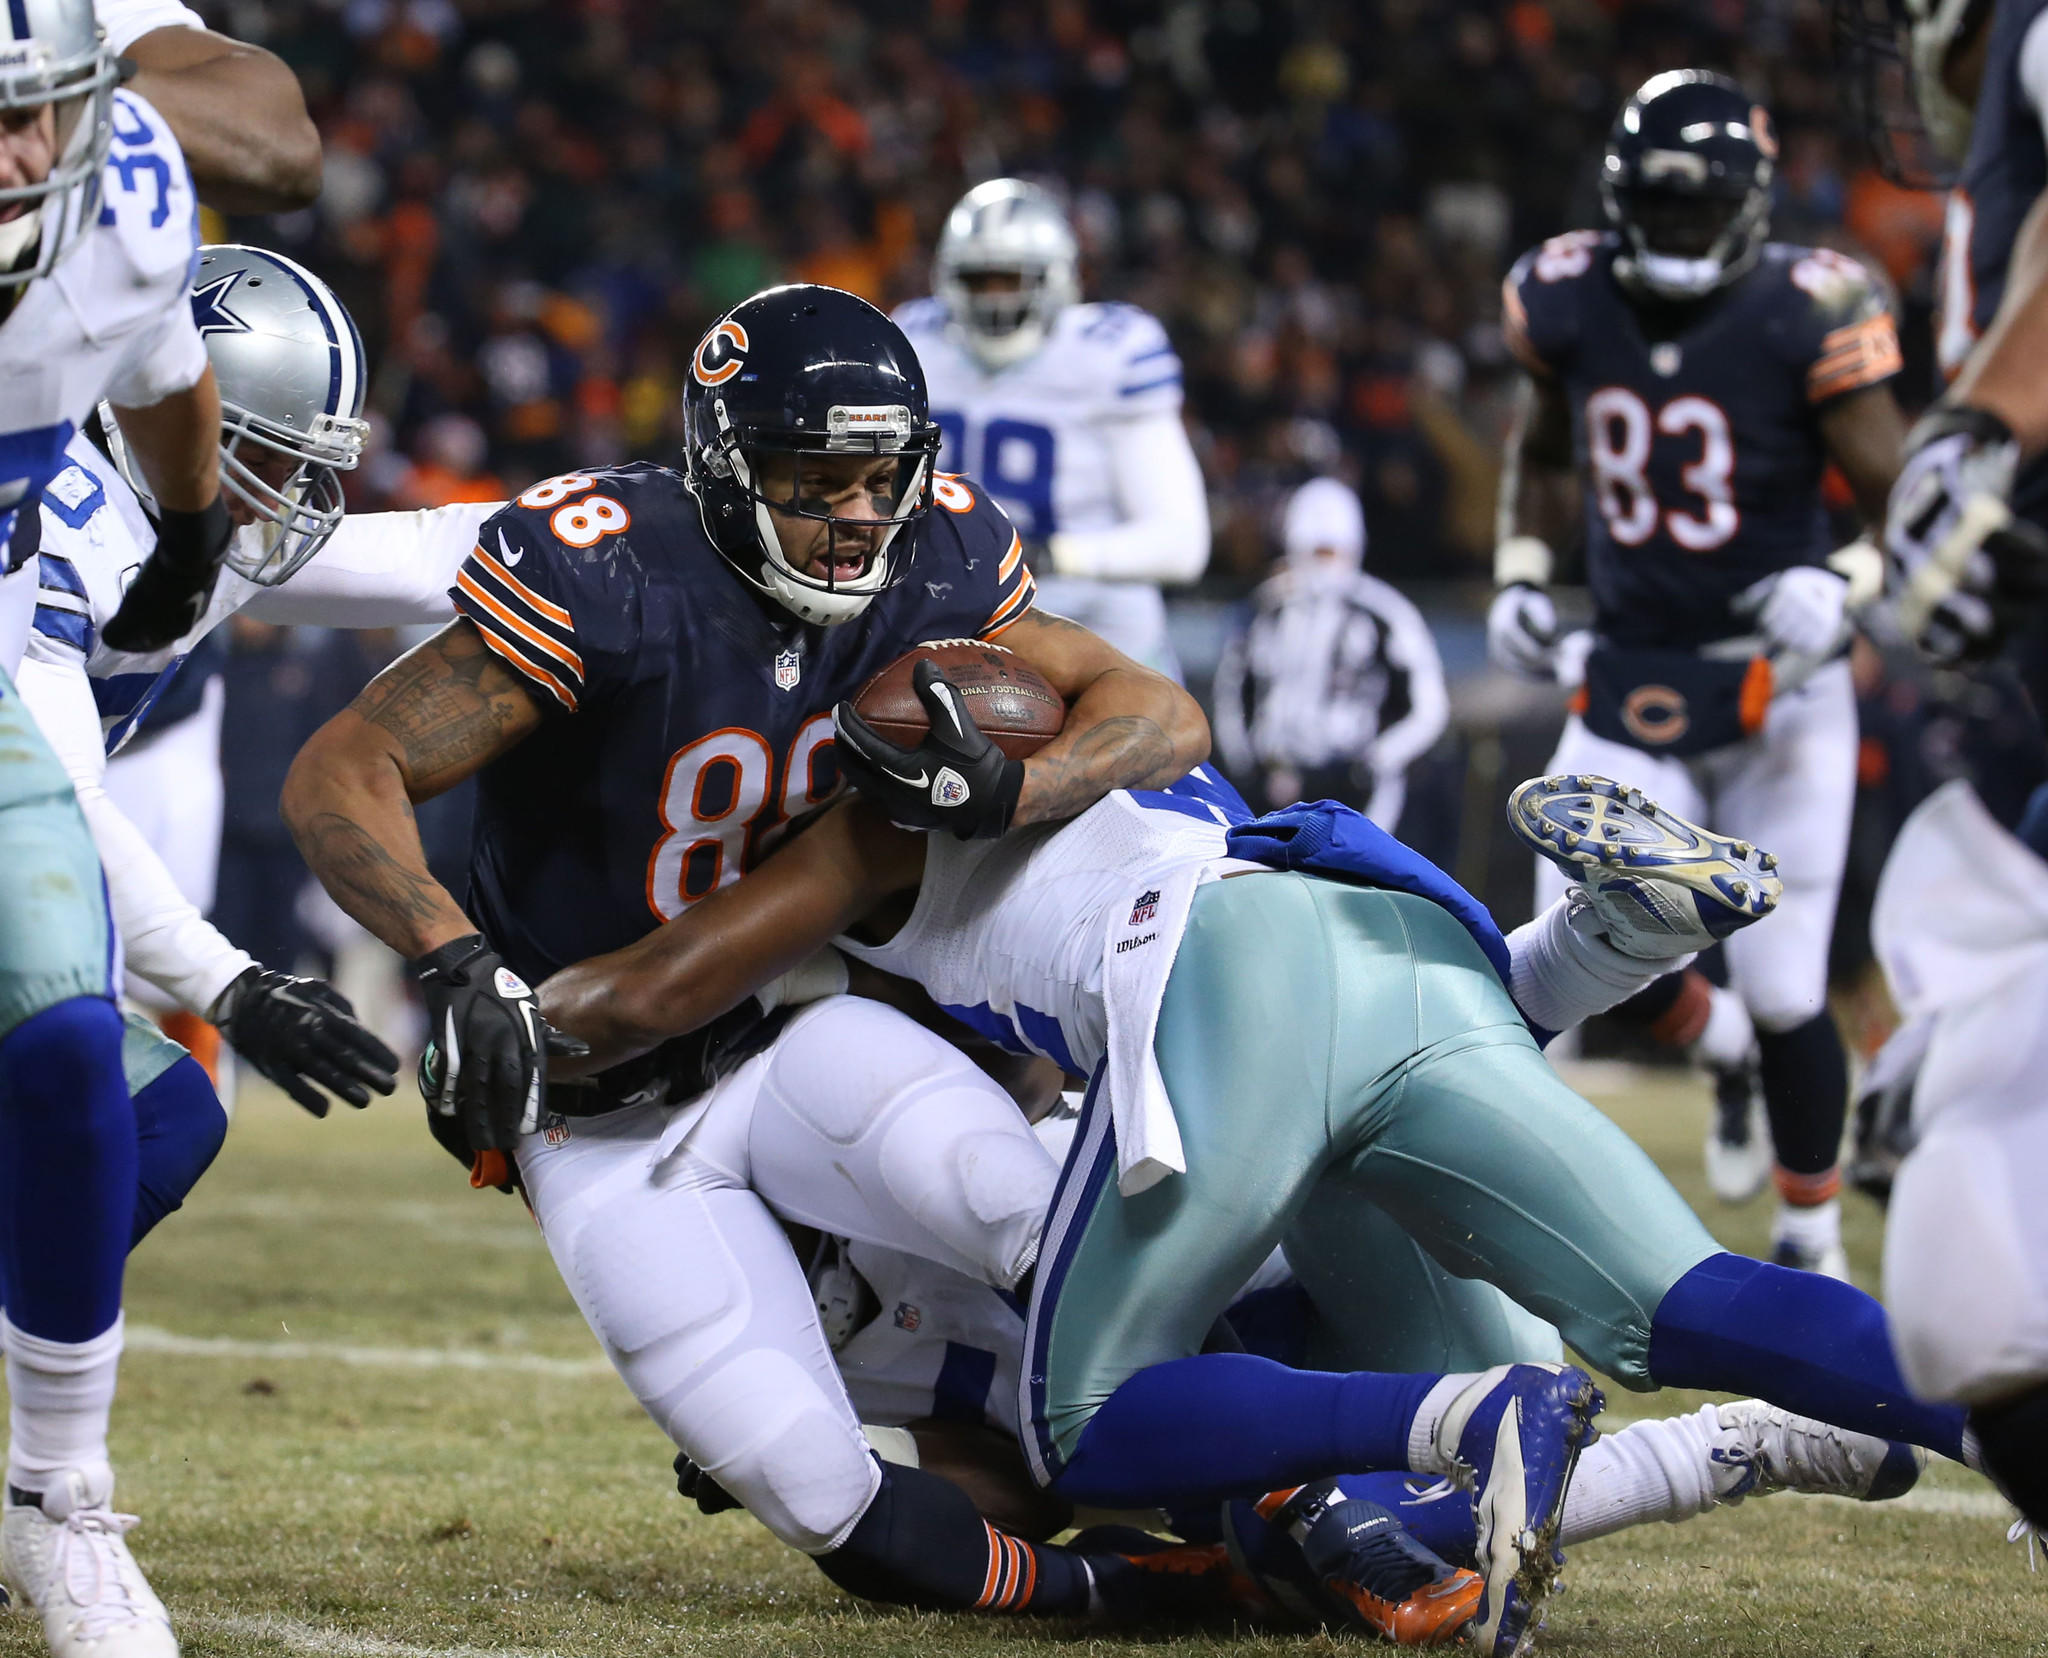 Chicago Bears tight end Dante Rosario (88) is brought down by the Dallas Cowboys defense.